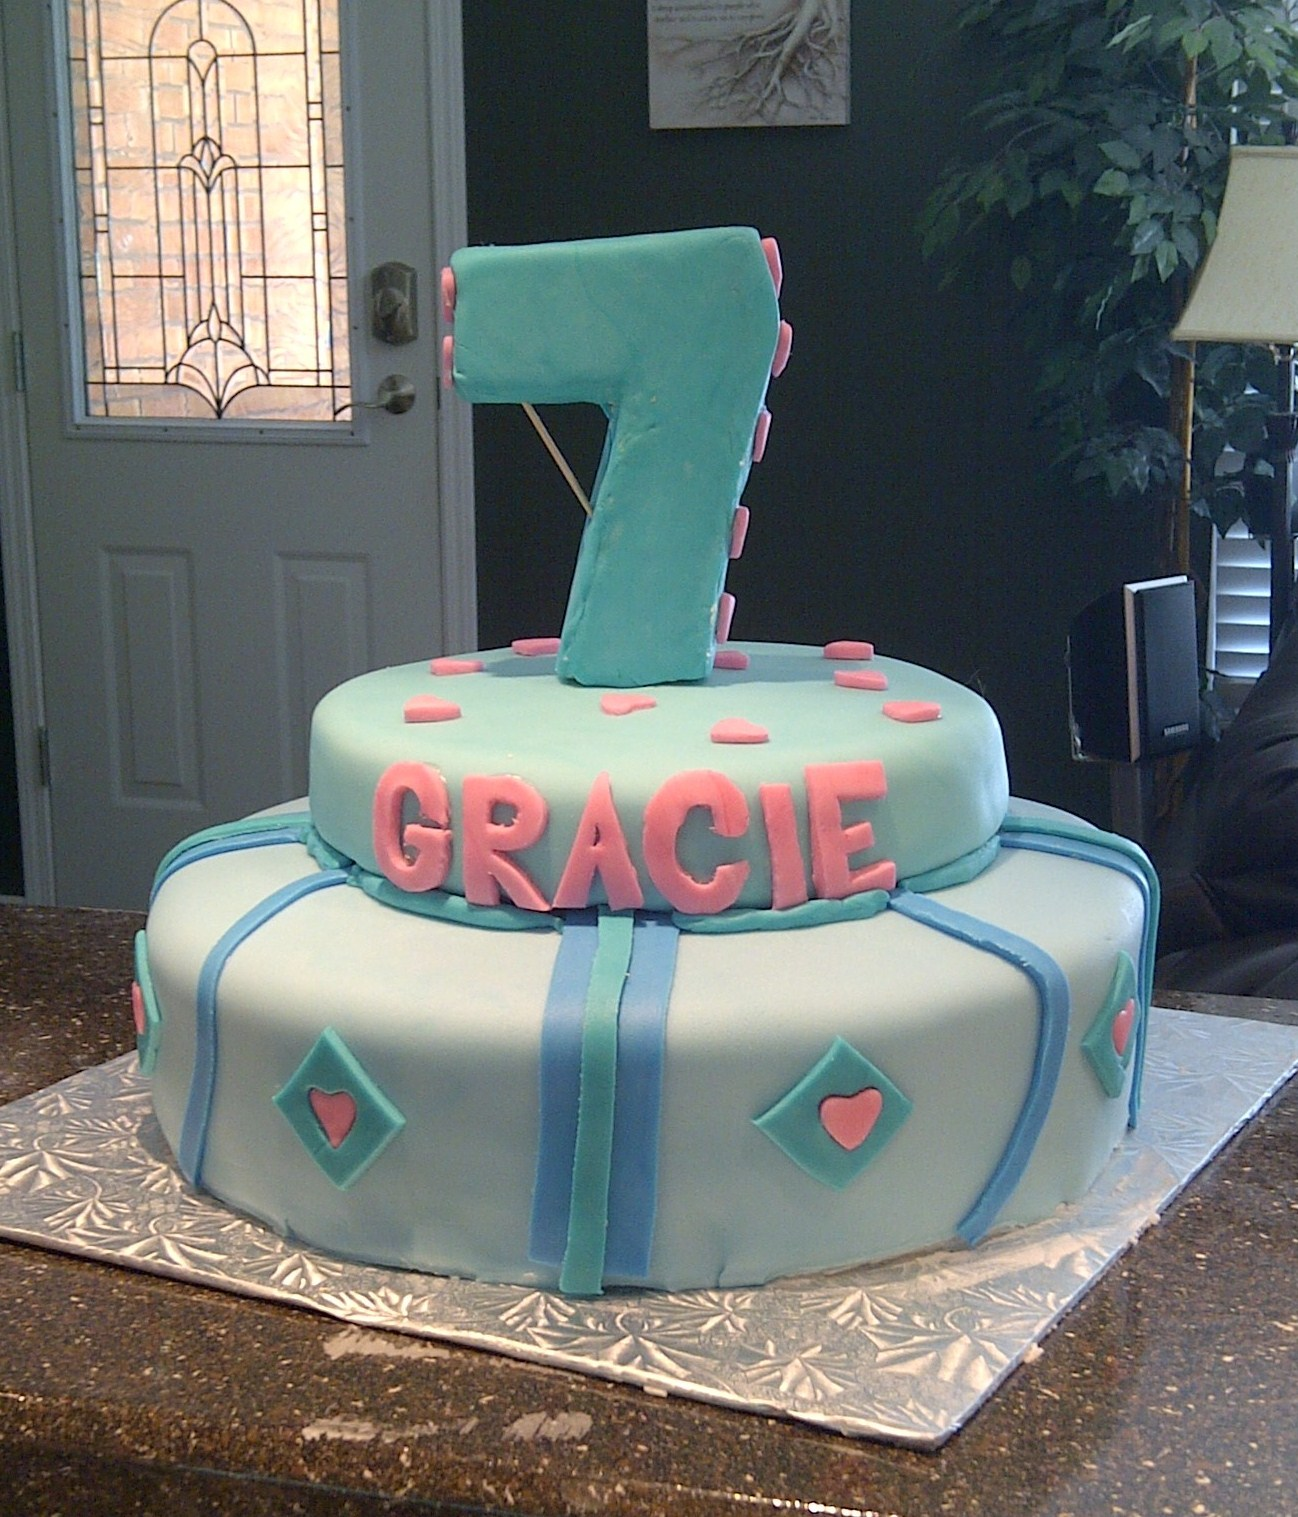 7 Year Old Birthday Cakes http://cakesbyalissa.blogspot.com/2012/01/7-year-old-birthday-party-cake.html